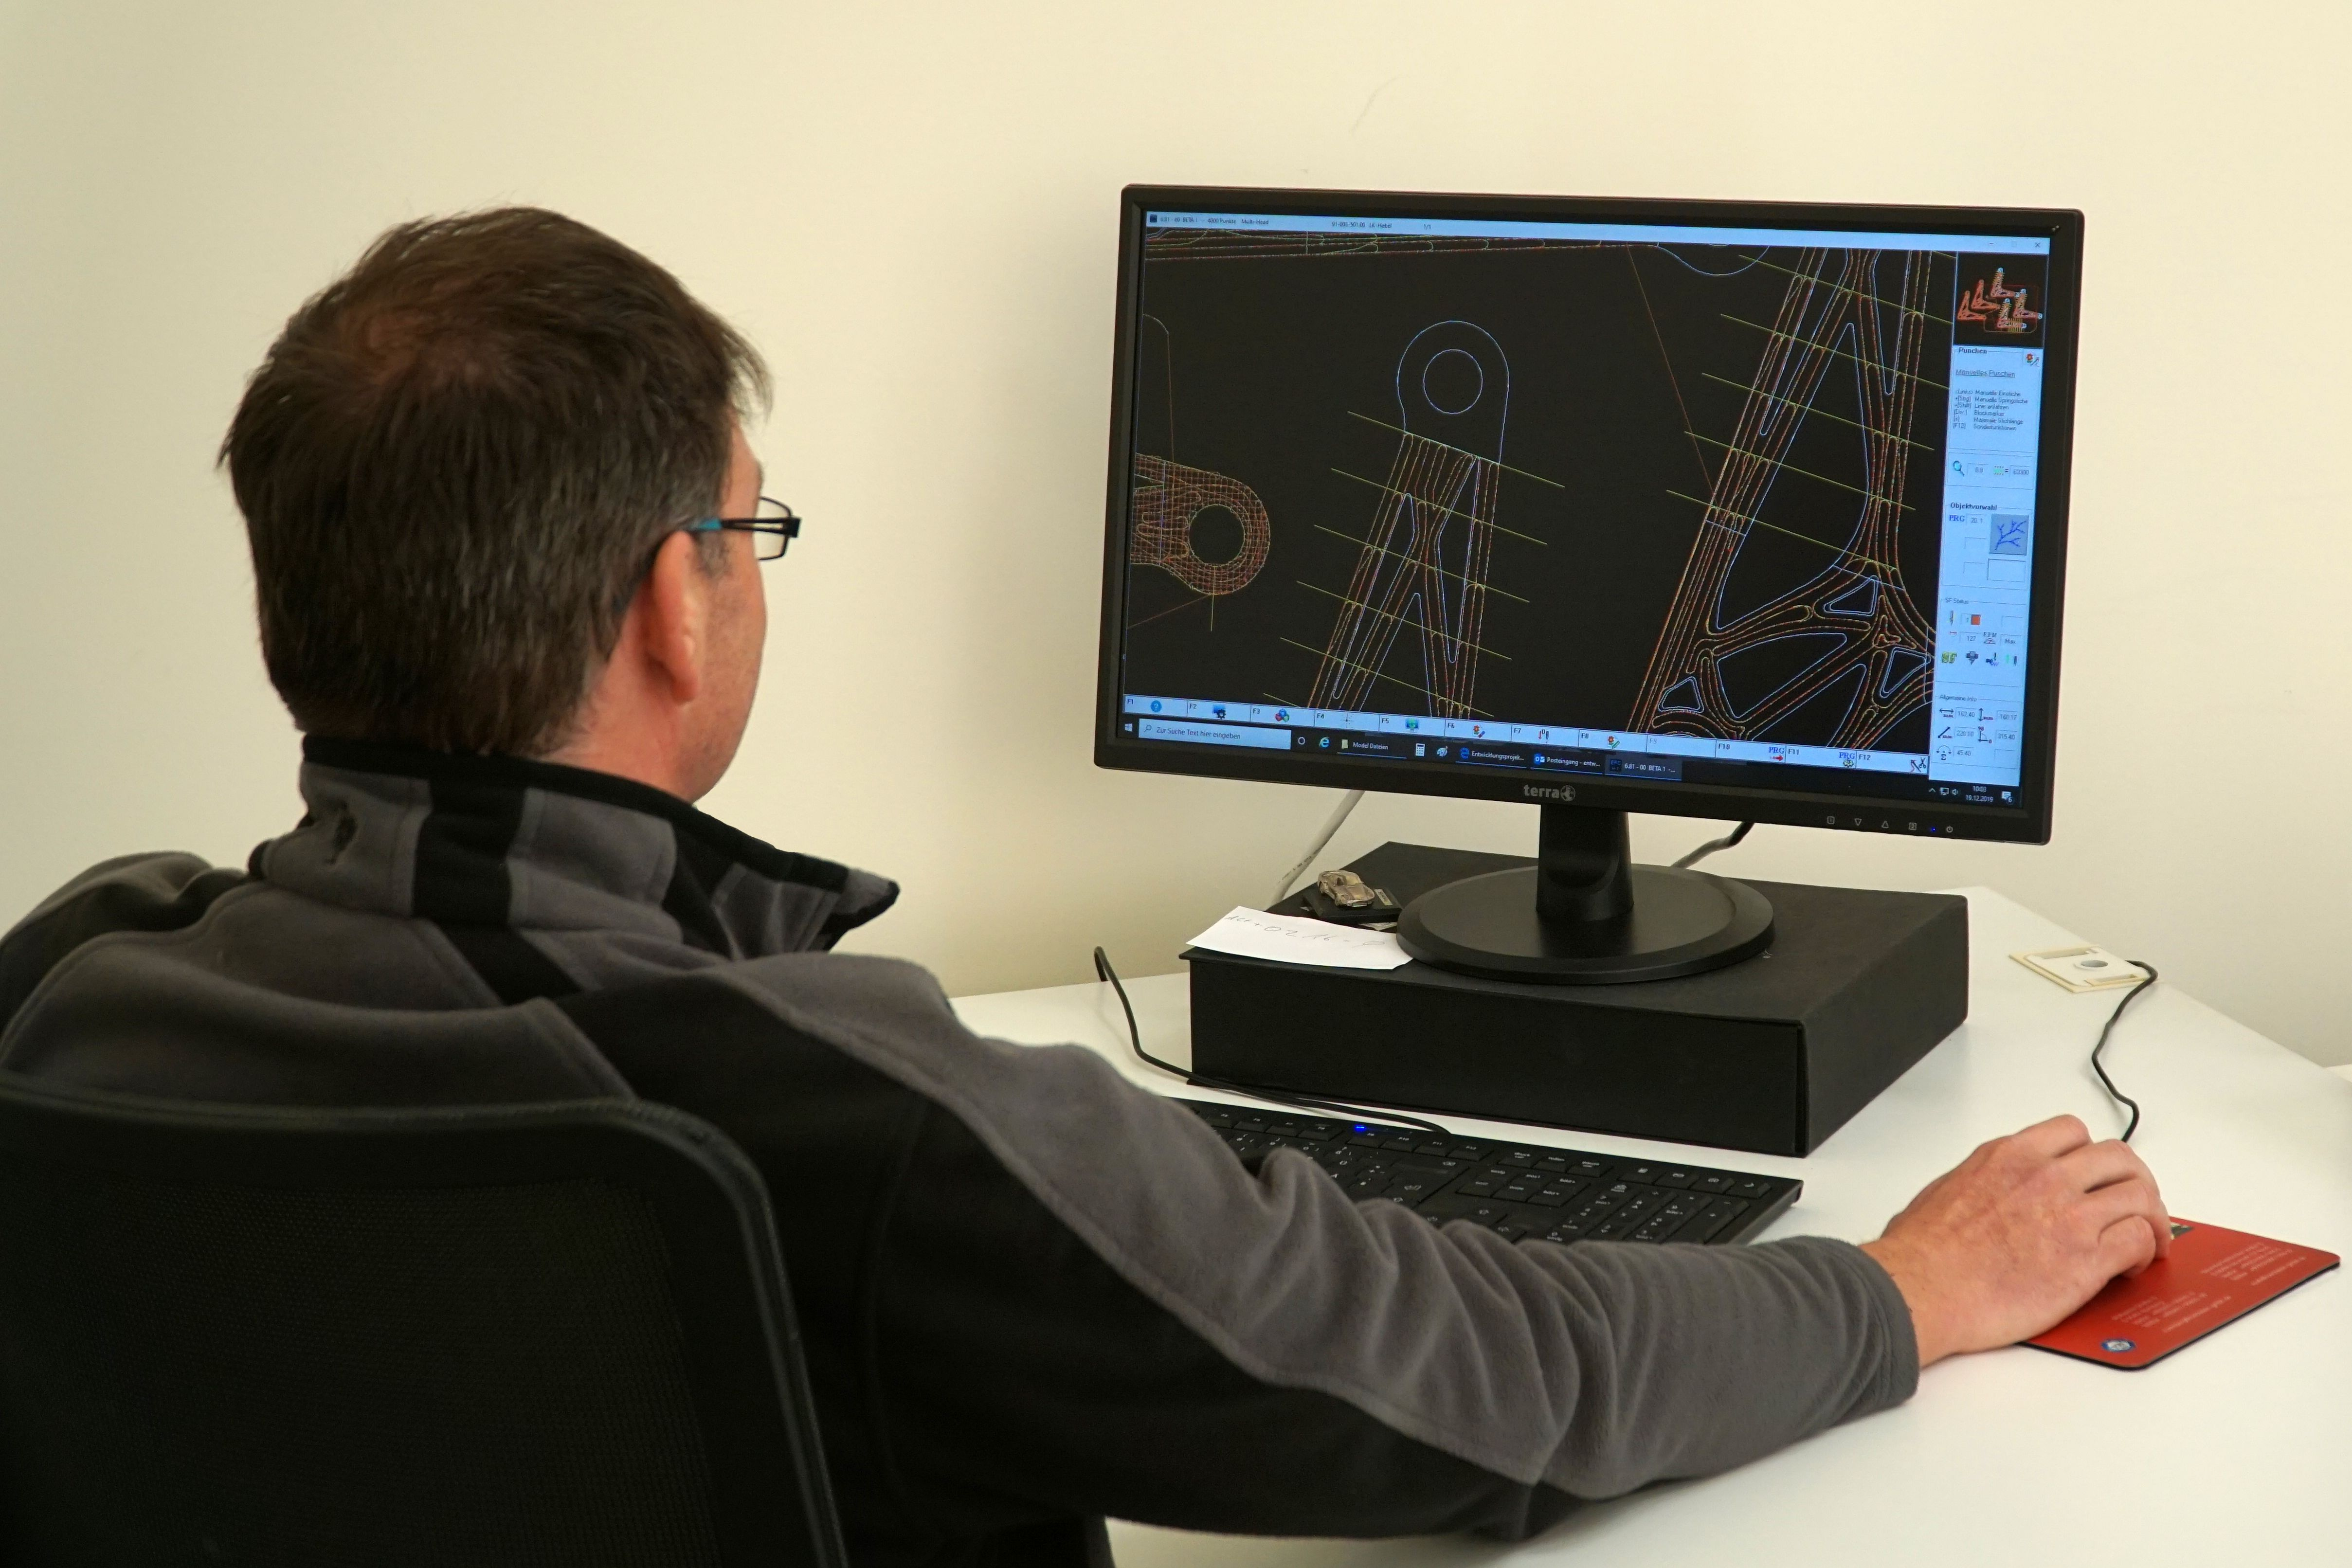 Development of high performance parts at modern CAD workstations